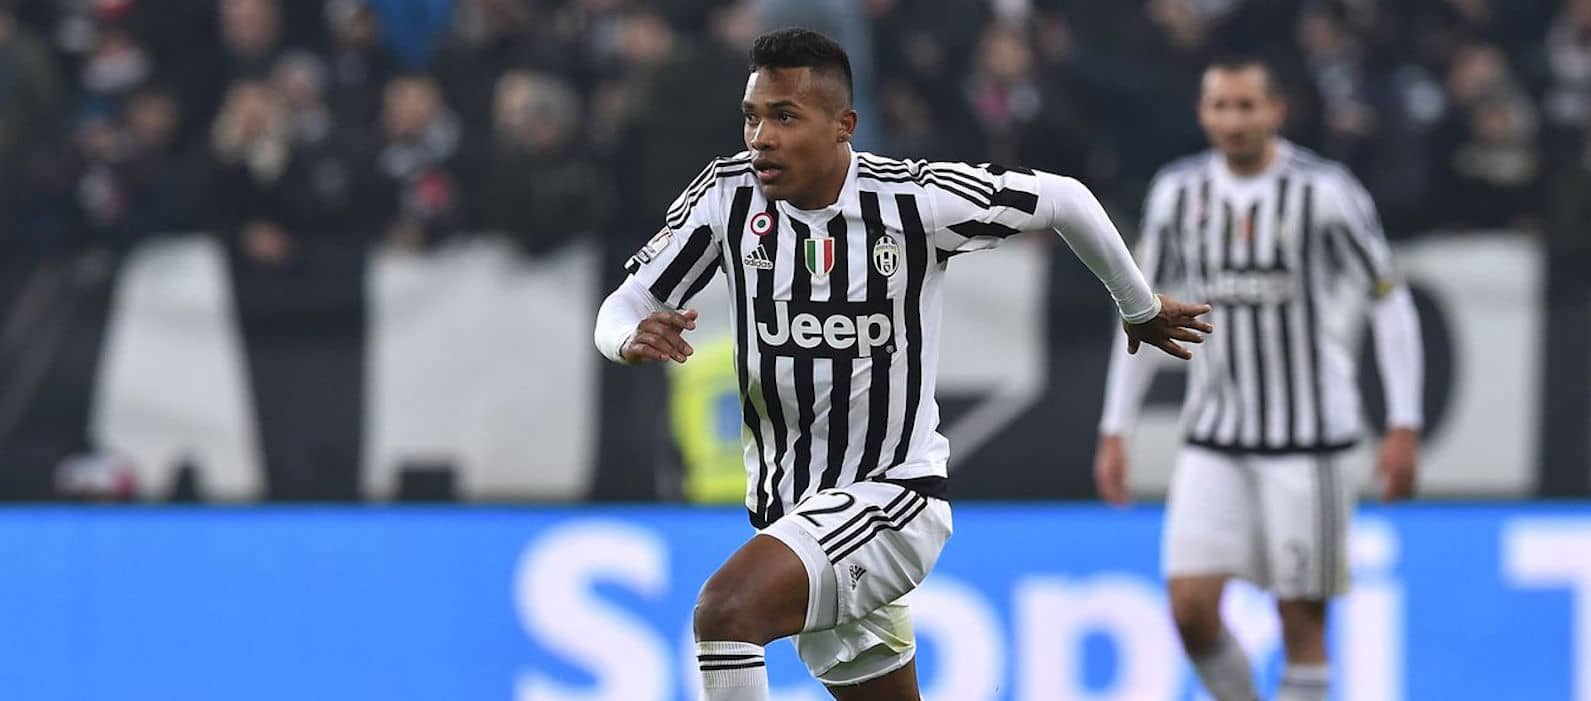 Alex Sandro's move to Manchester United likely to prompt Anthony Martial exit – report